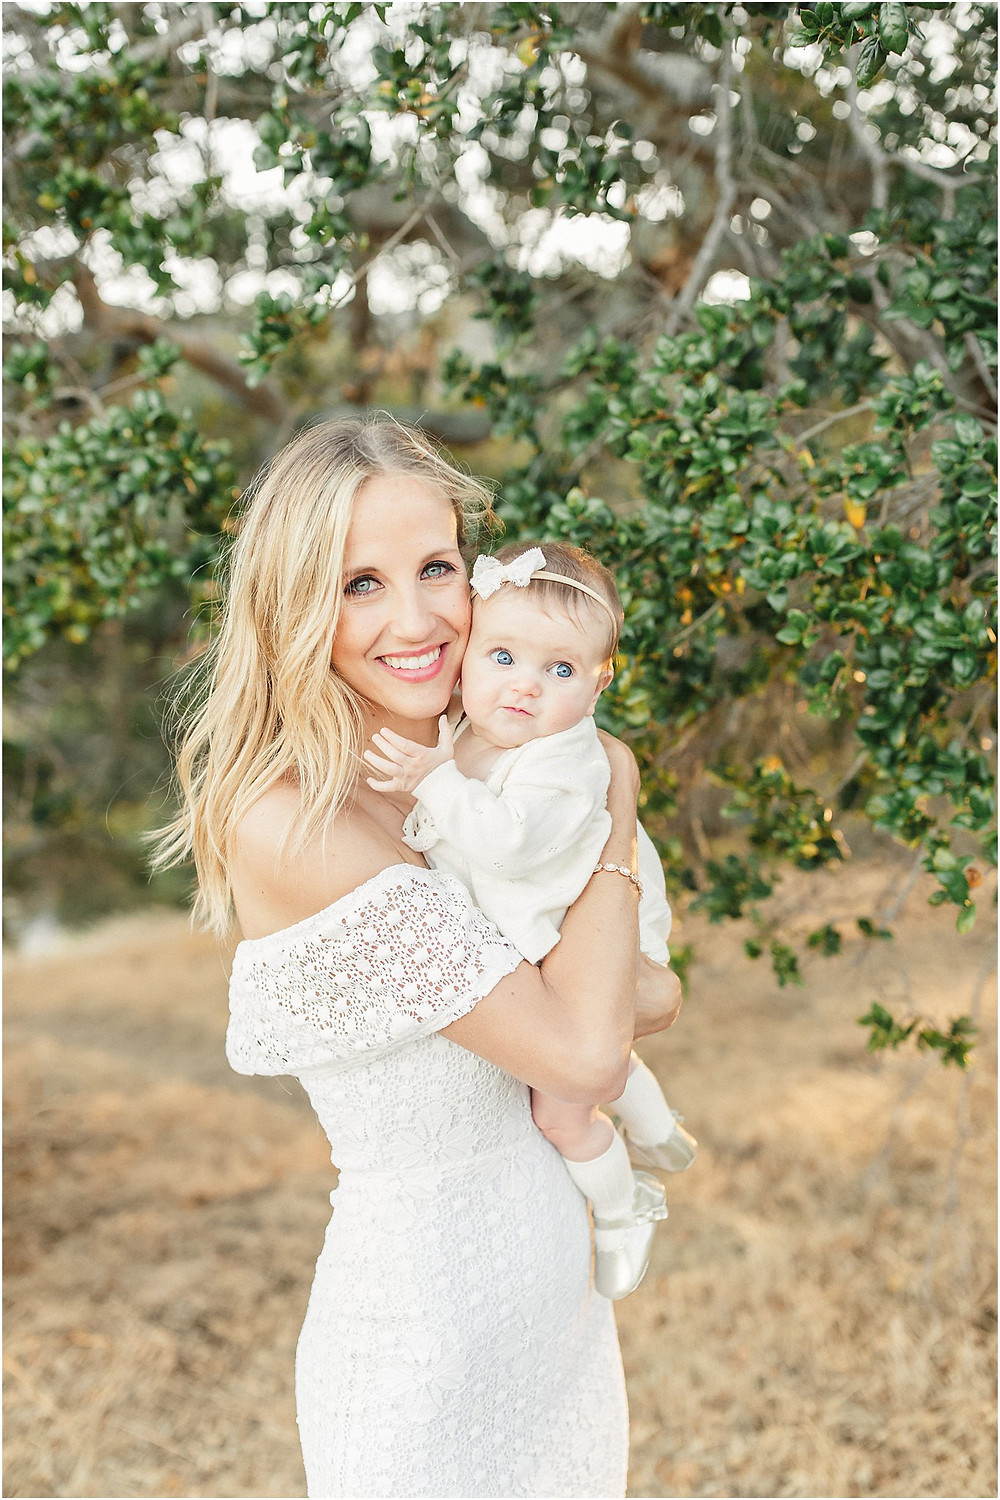 California rolling hills 6 month baby session by San Francisco Bay Area fine art lifestyle family photographer Torrey Fox. Mom family portrait style what to wear to my photo session white bright and airy fashion